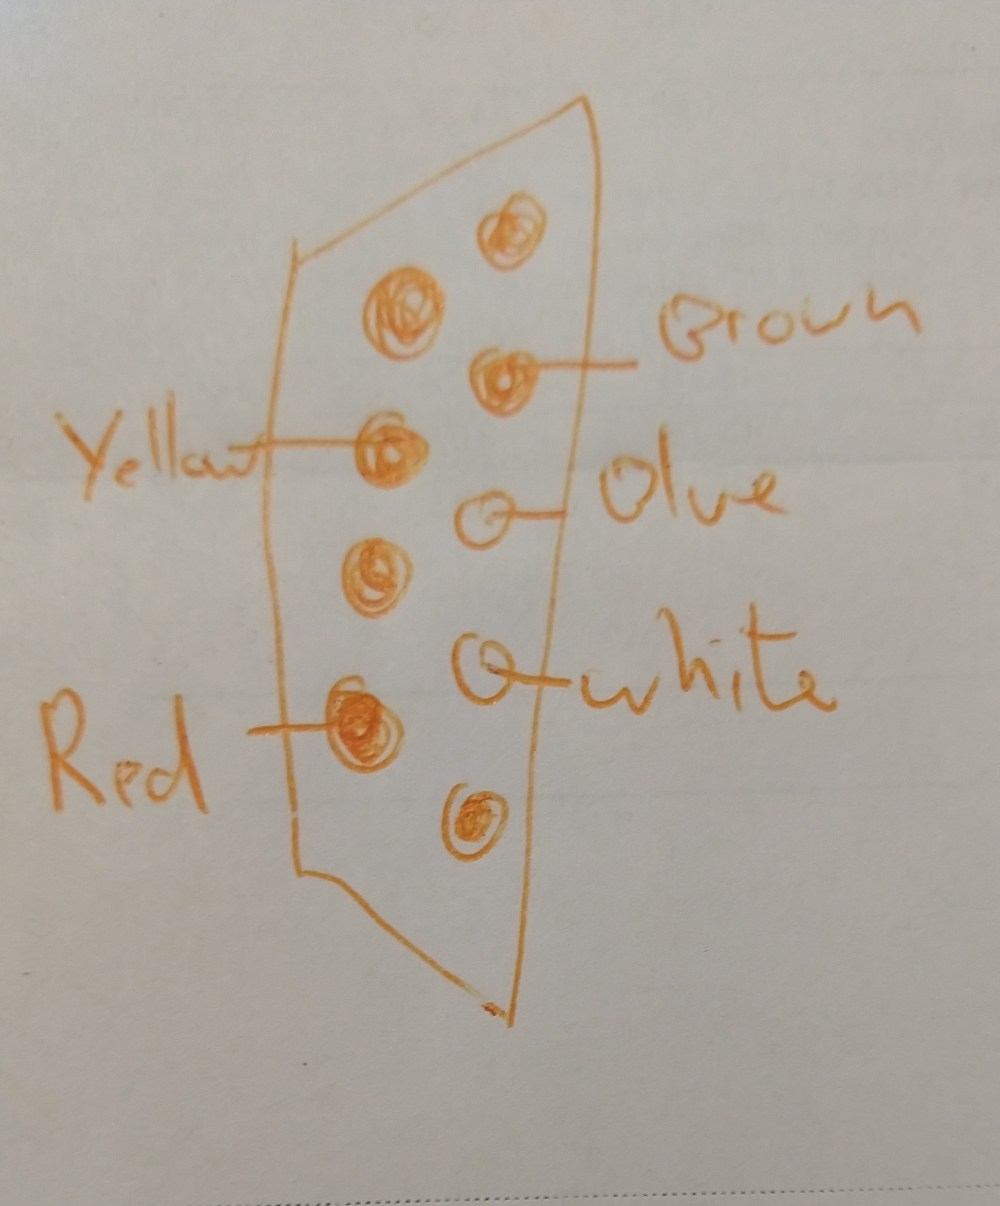 medium resolution of the pinout for the wire colors at the end of the cable is as follows